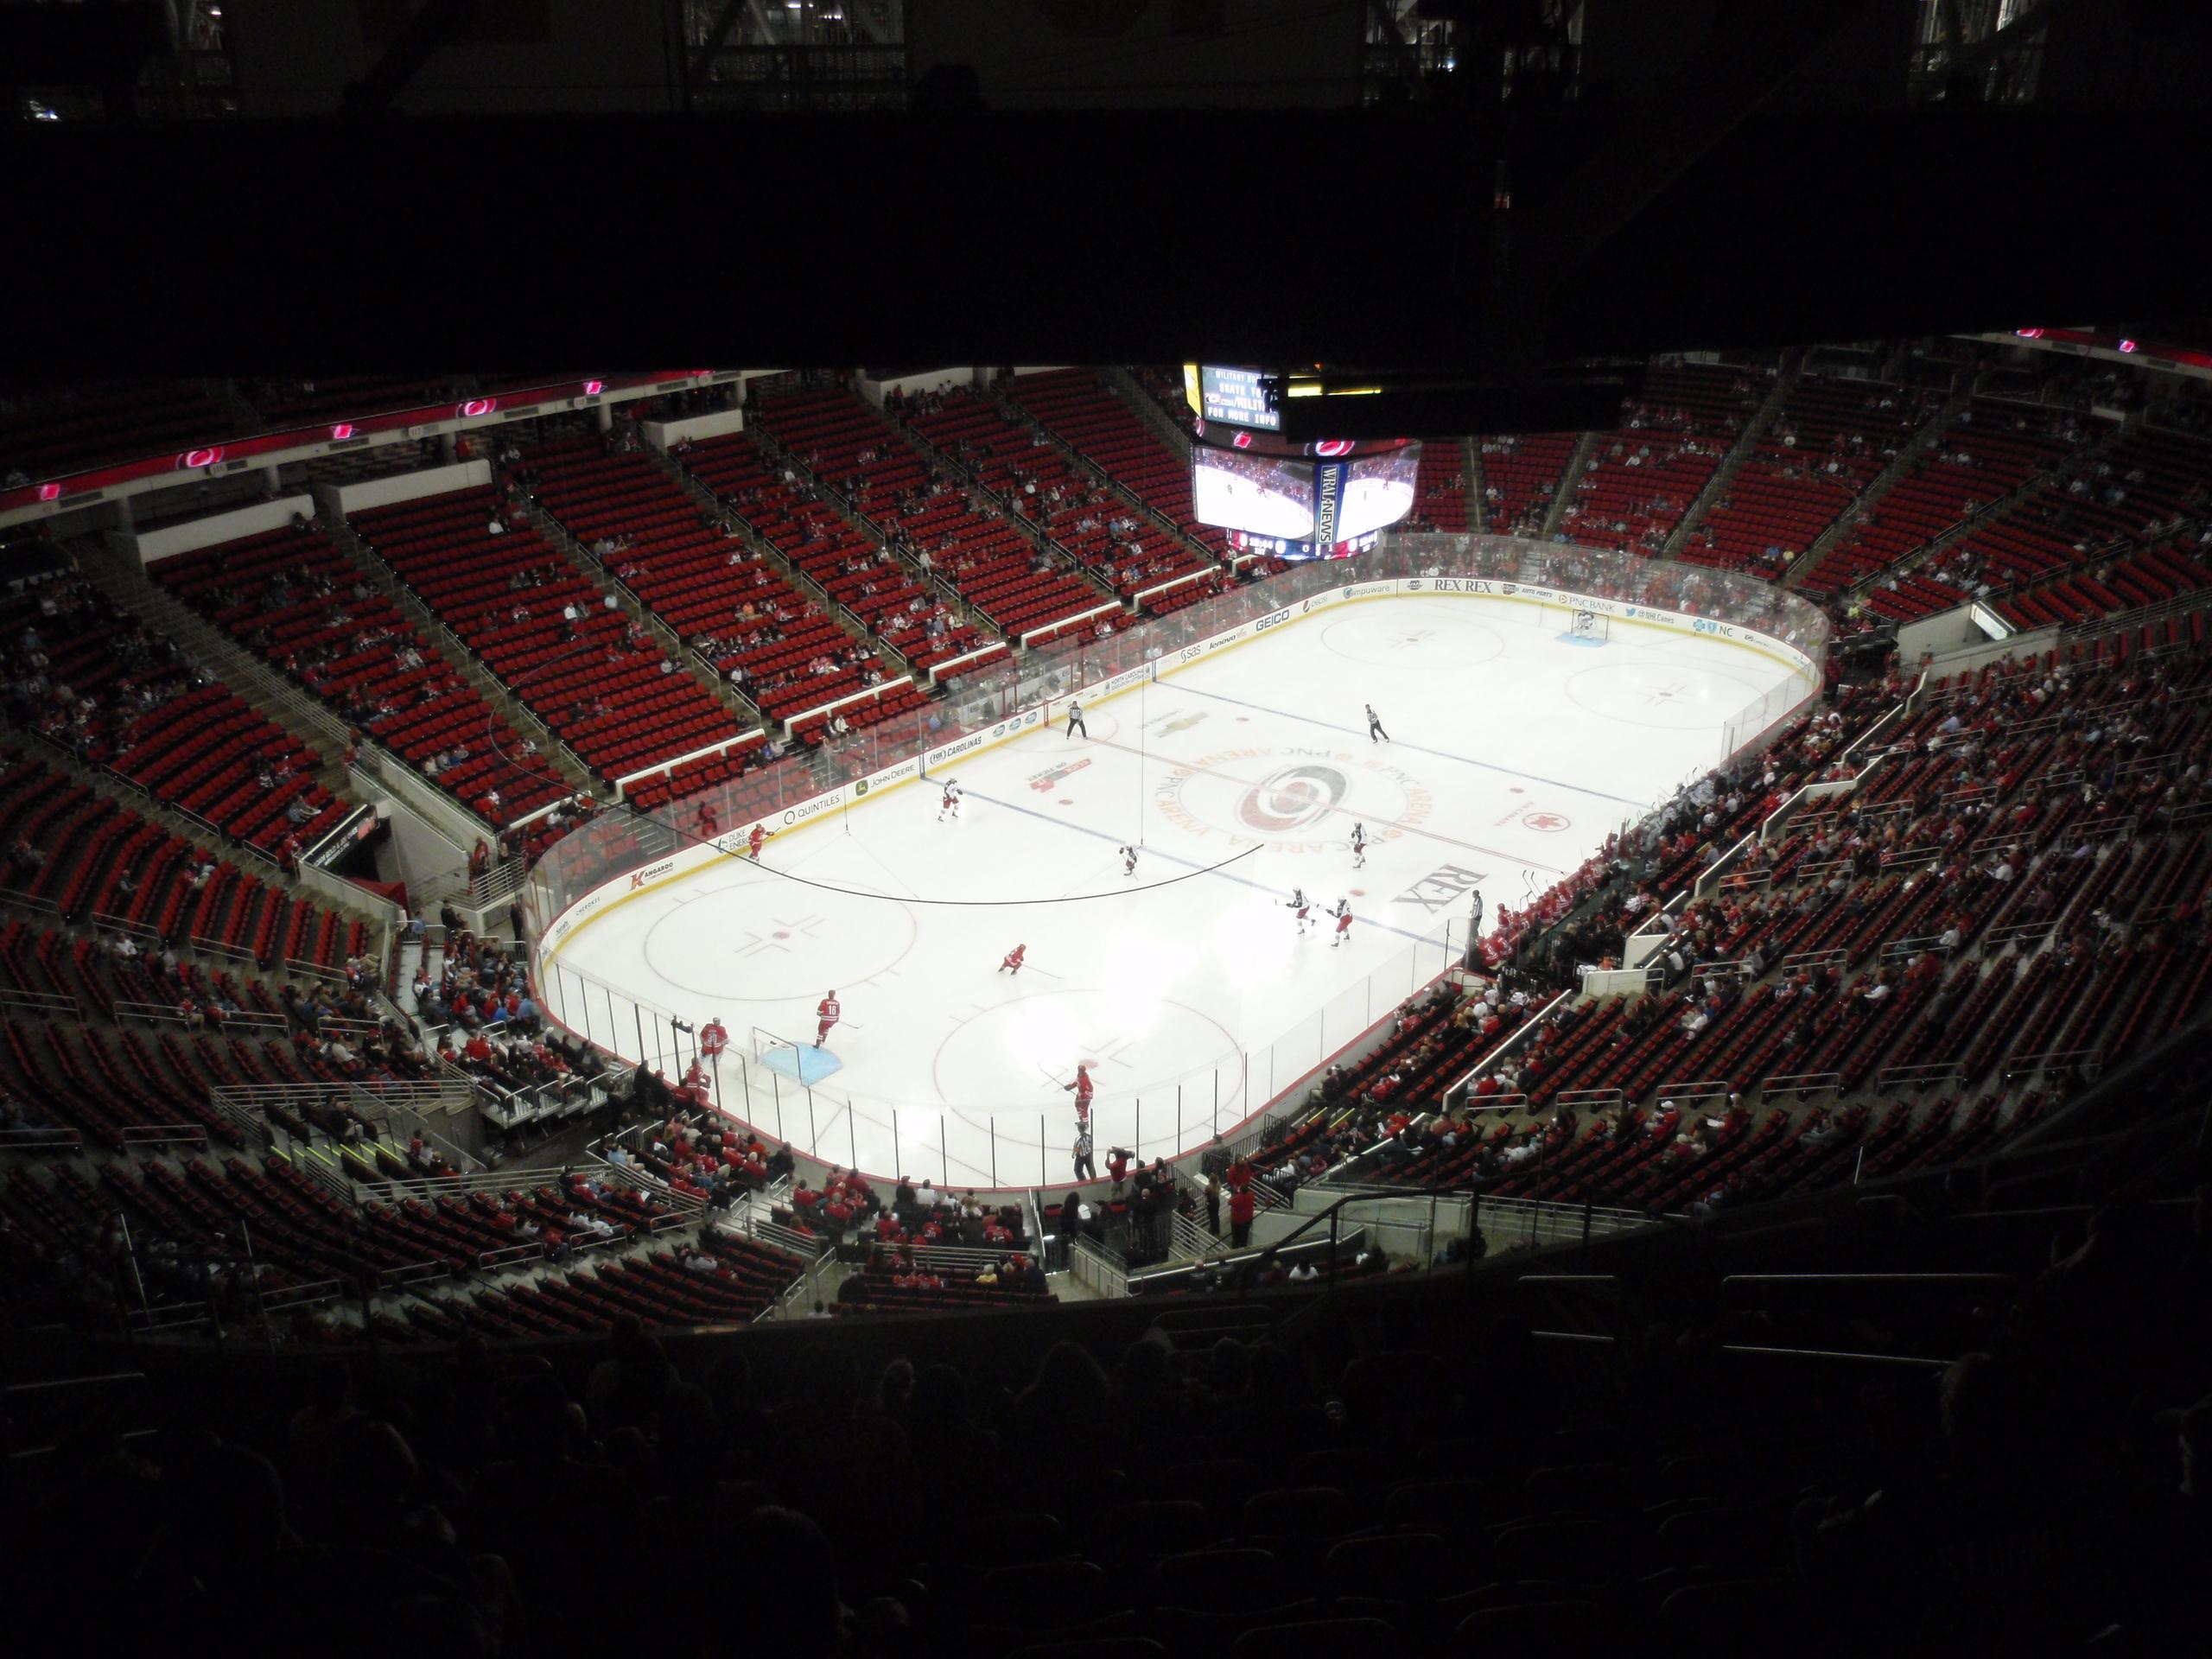 PNC Arena Section 310 Row N Seat 7